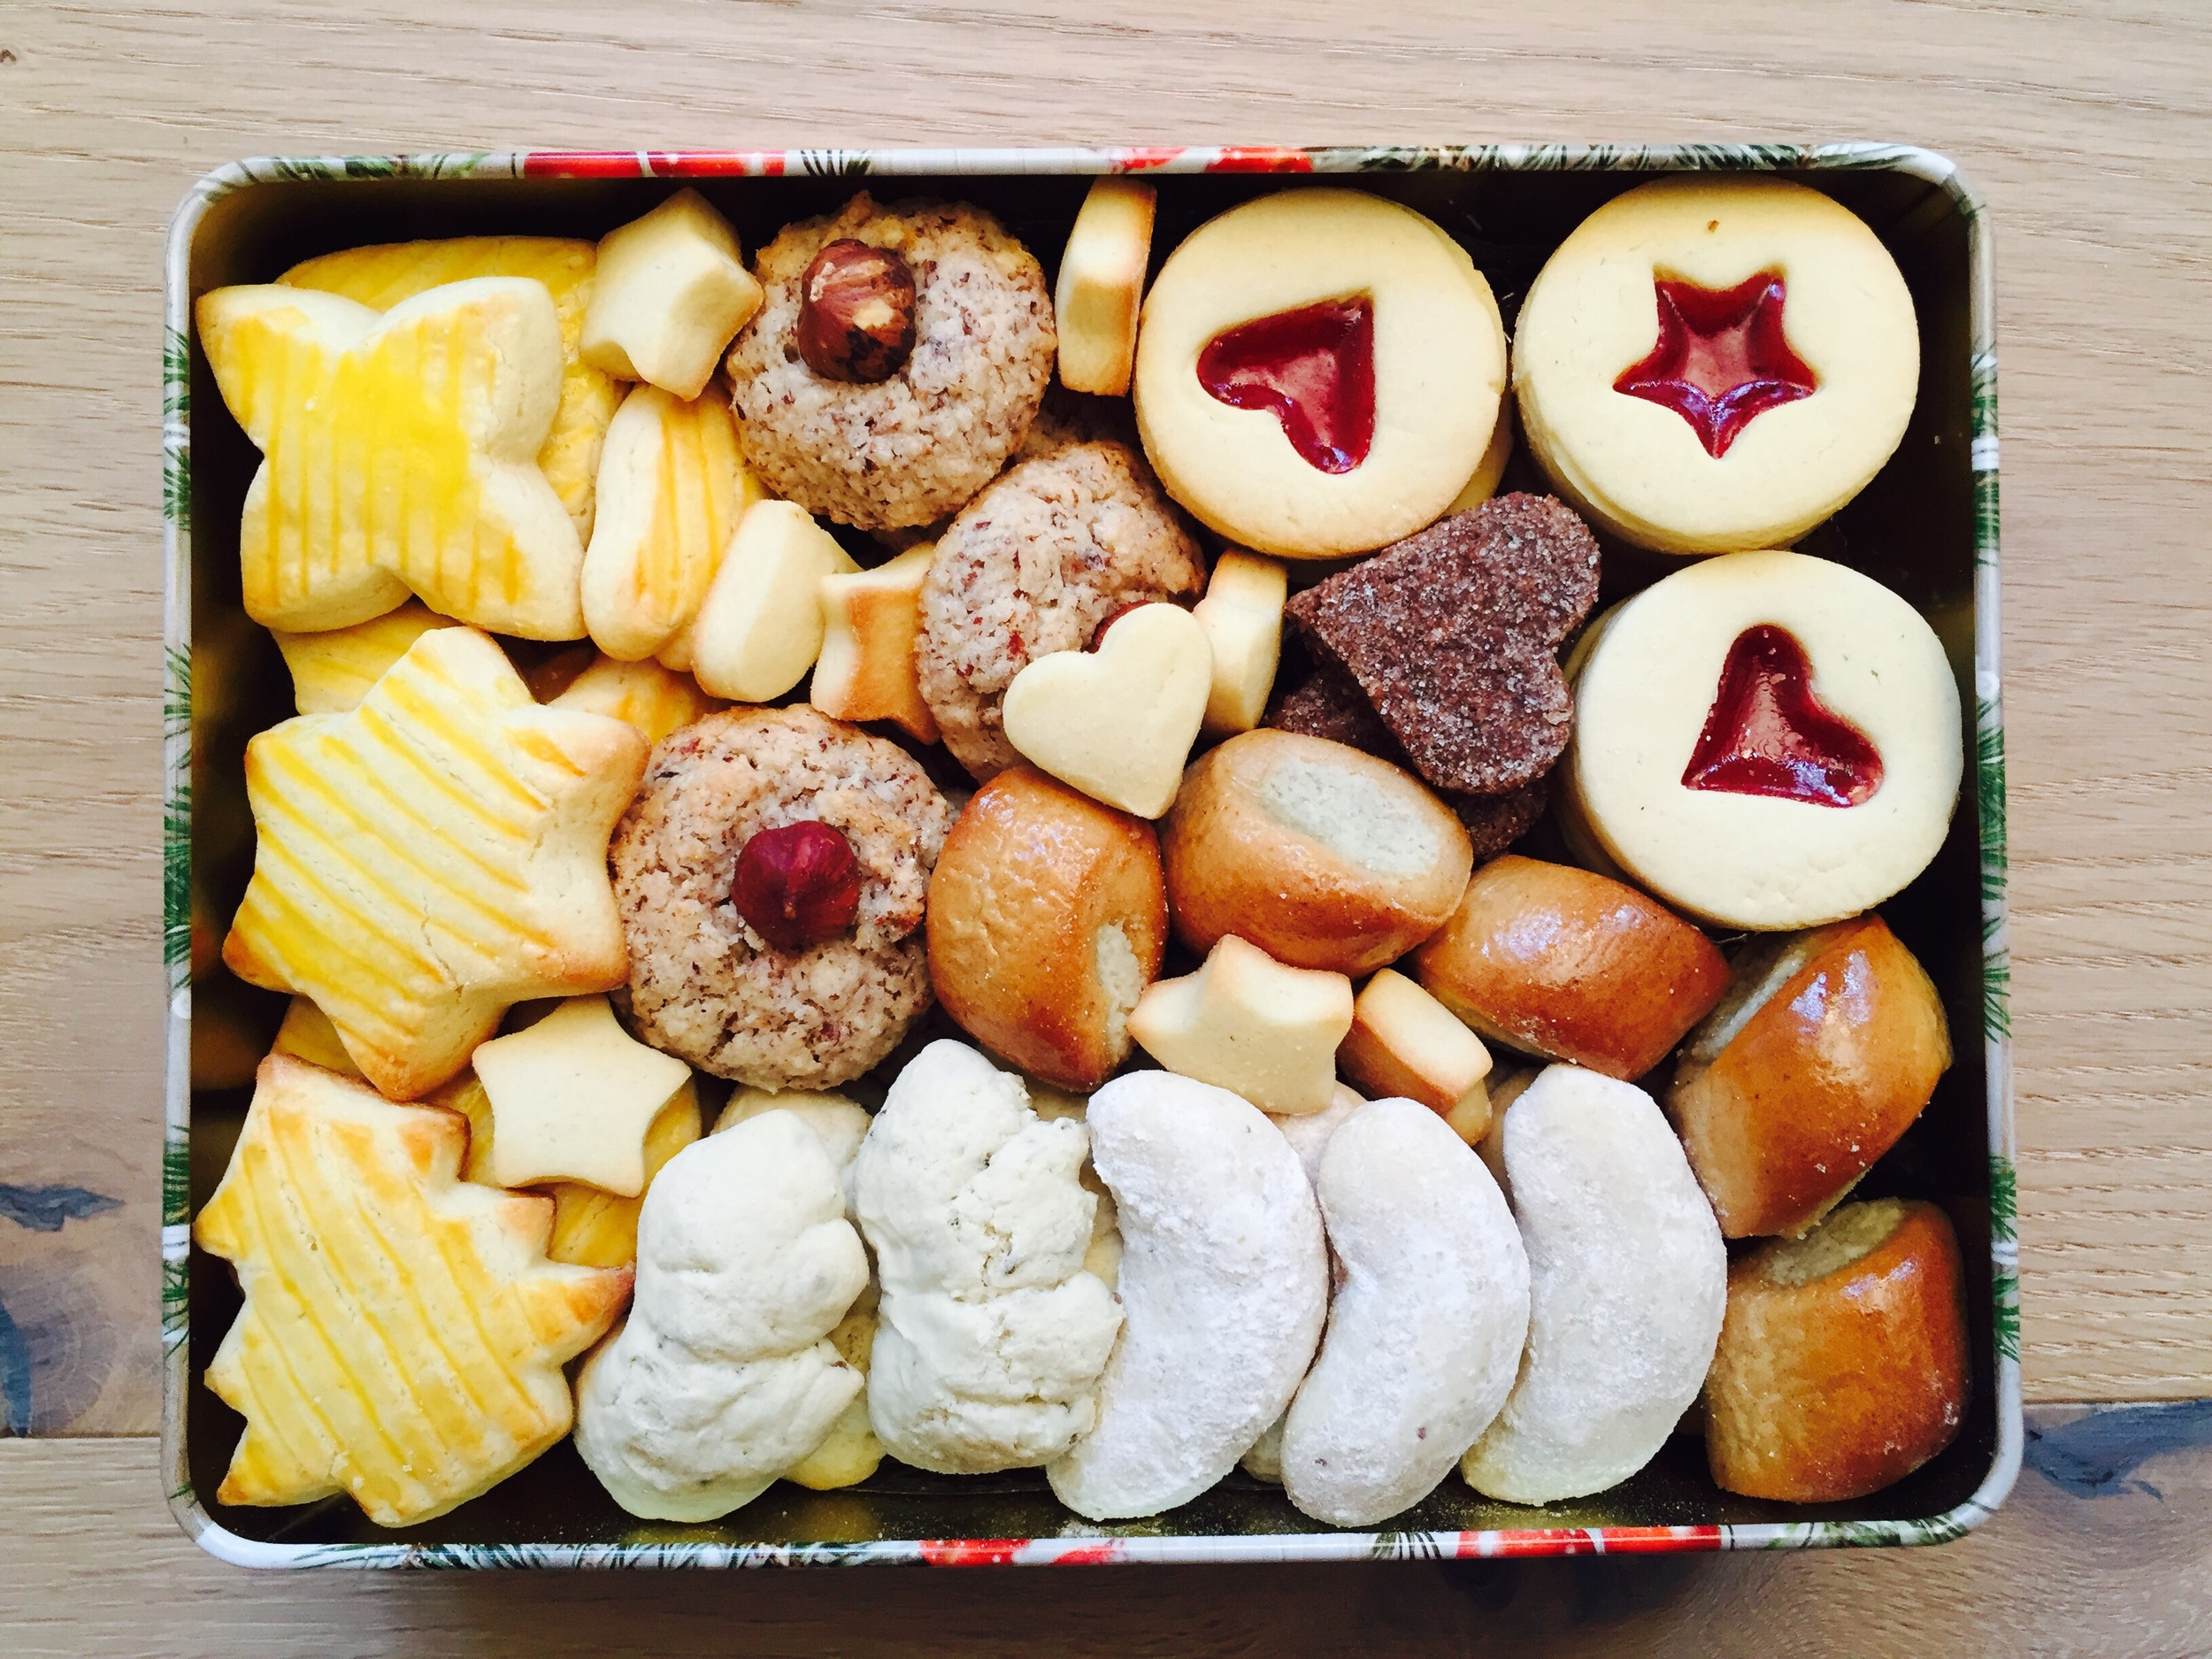 A box full of goodness.